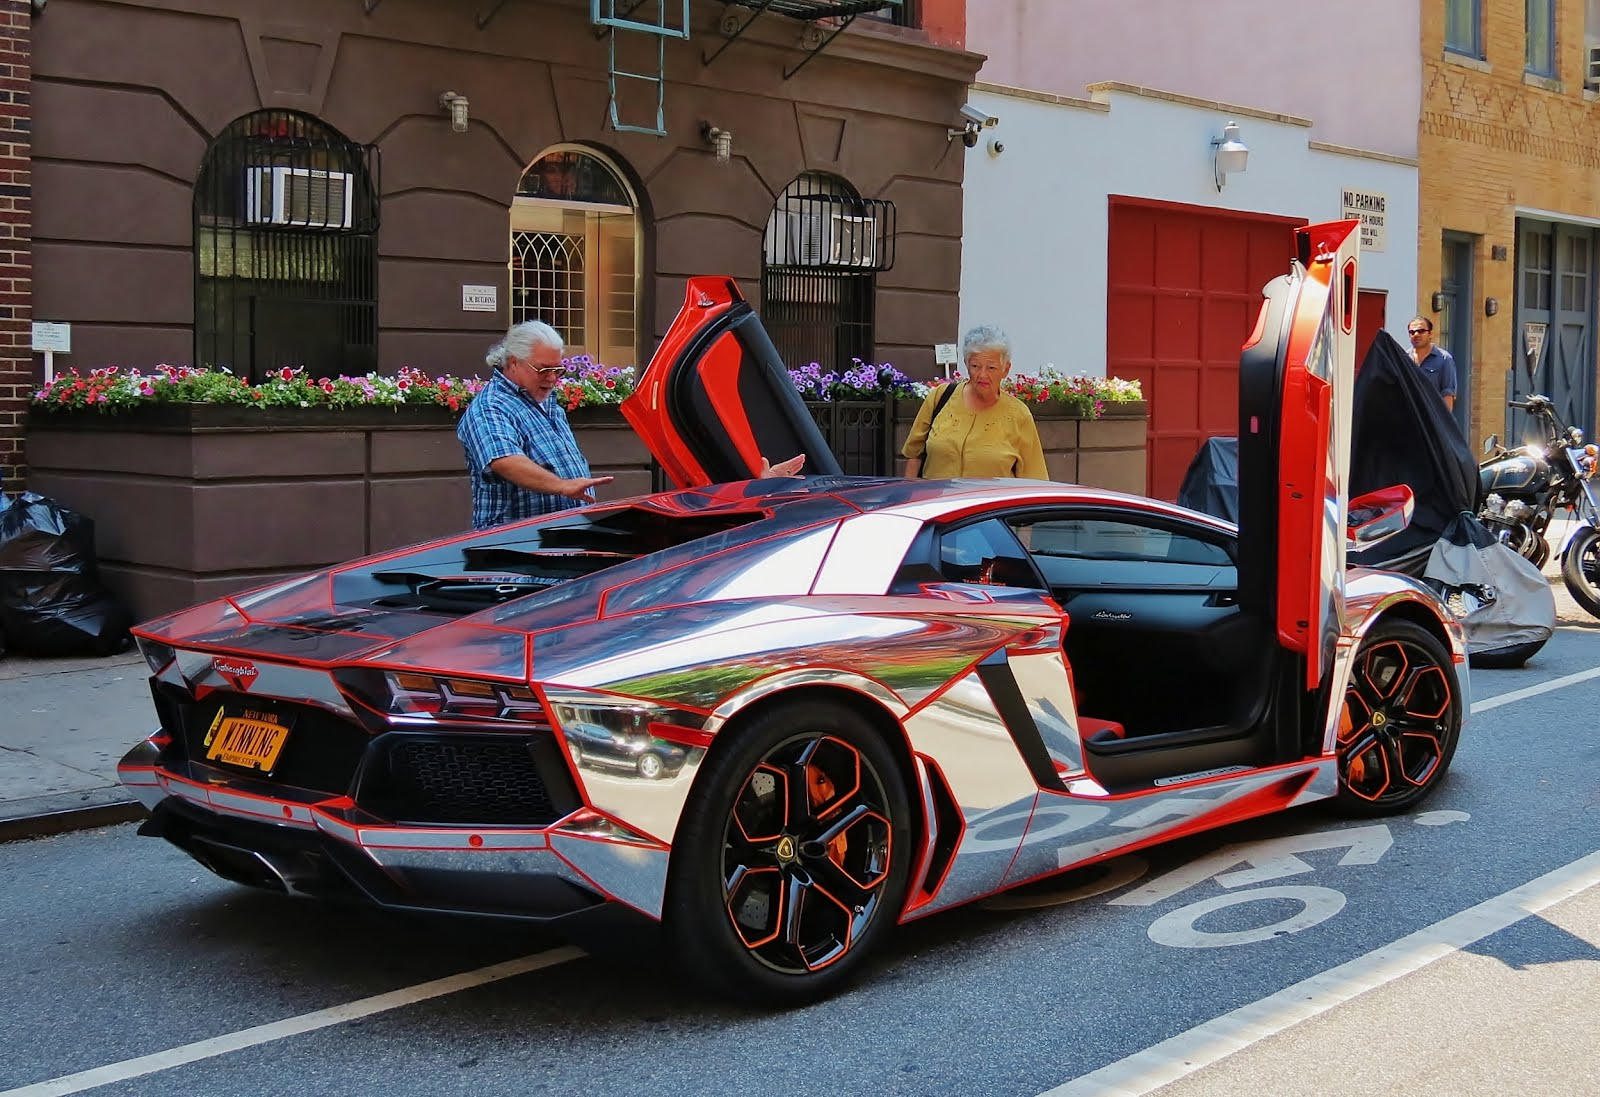 ev grieve today in photos of a lamborghini with a. Black Bedroom Furniture Sets. Home Design Ideas